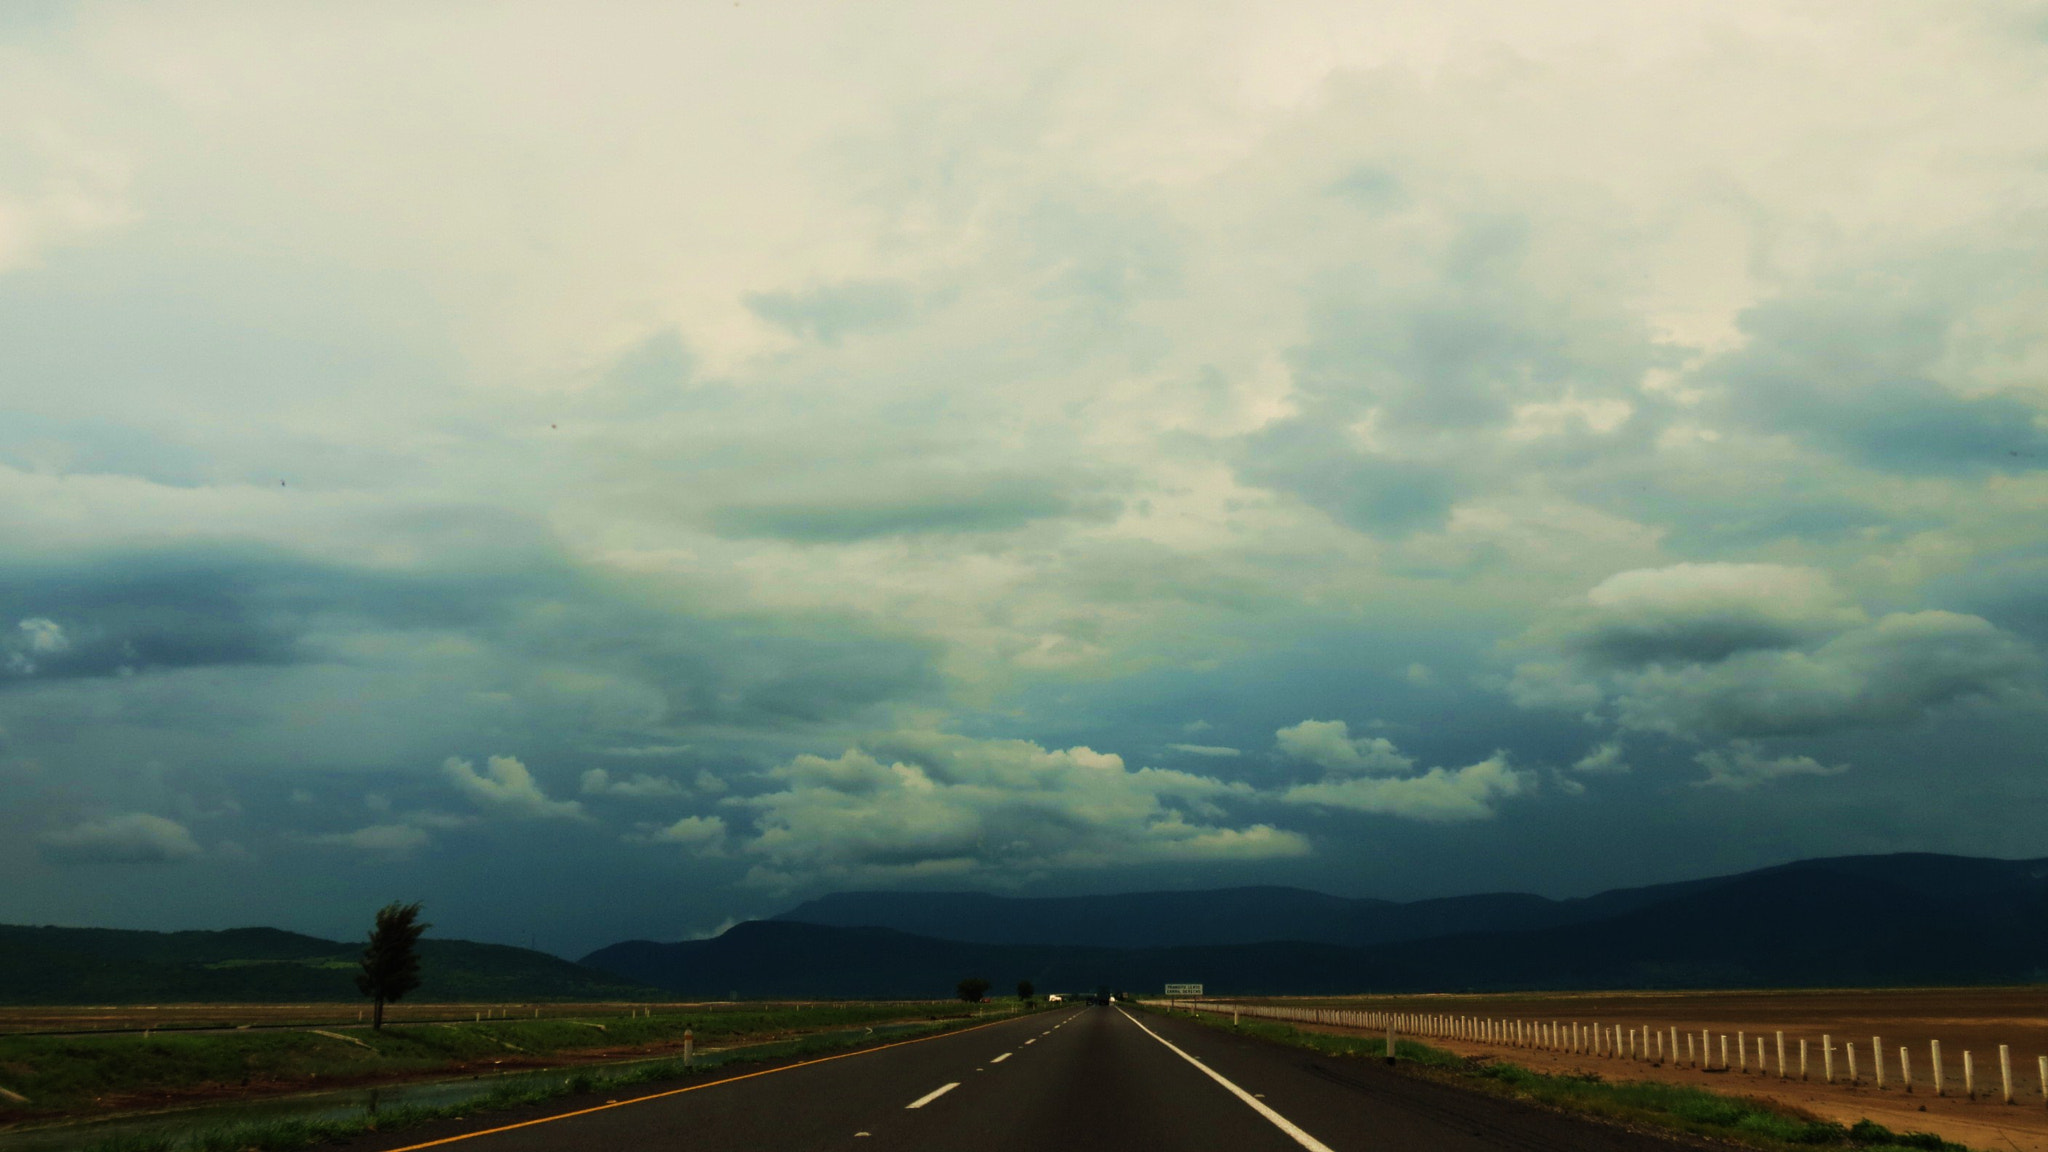 Photograph Carretera by Brando Isaac Rocha Lopez on 500px